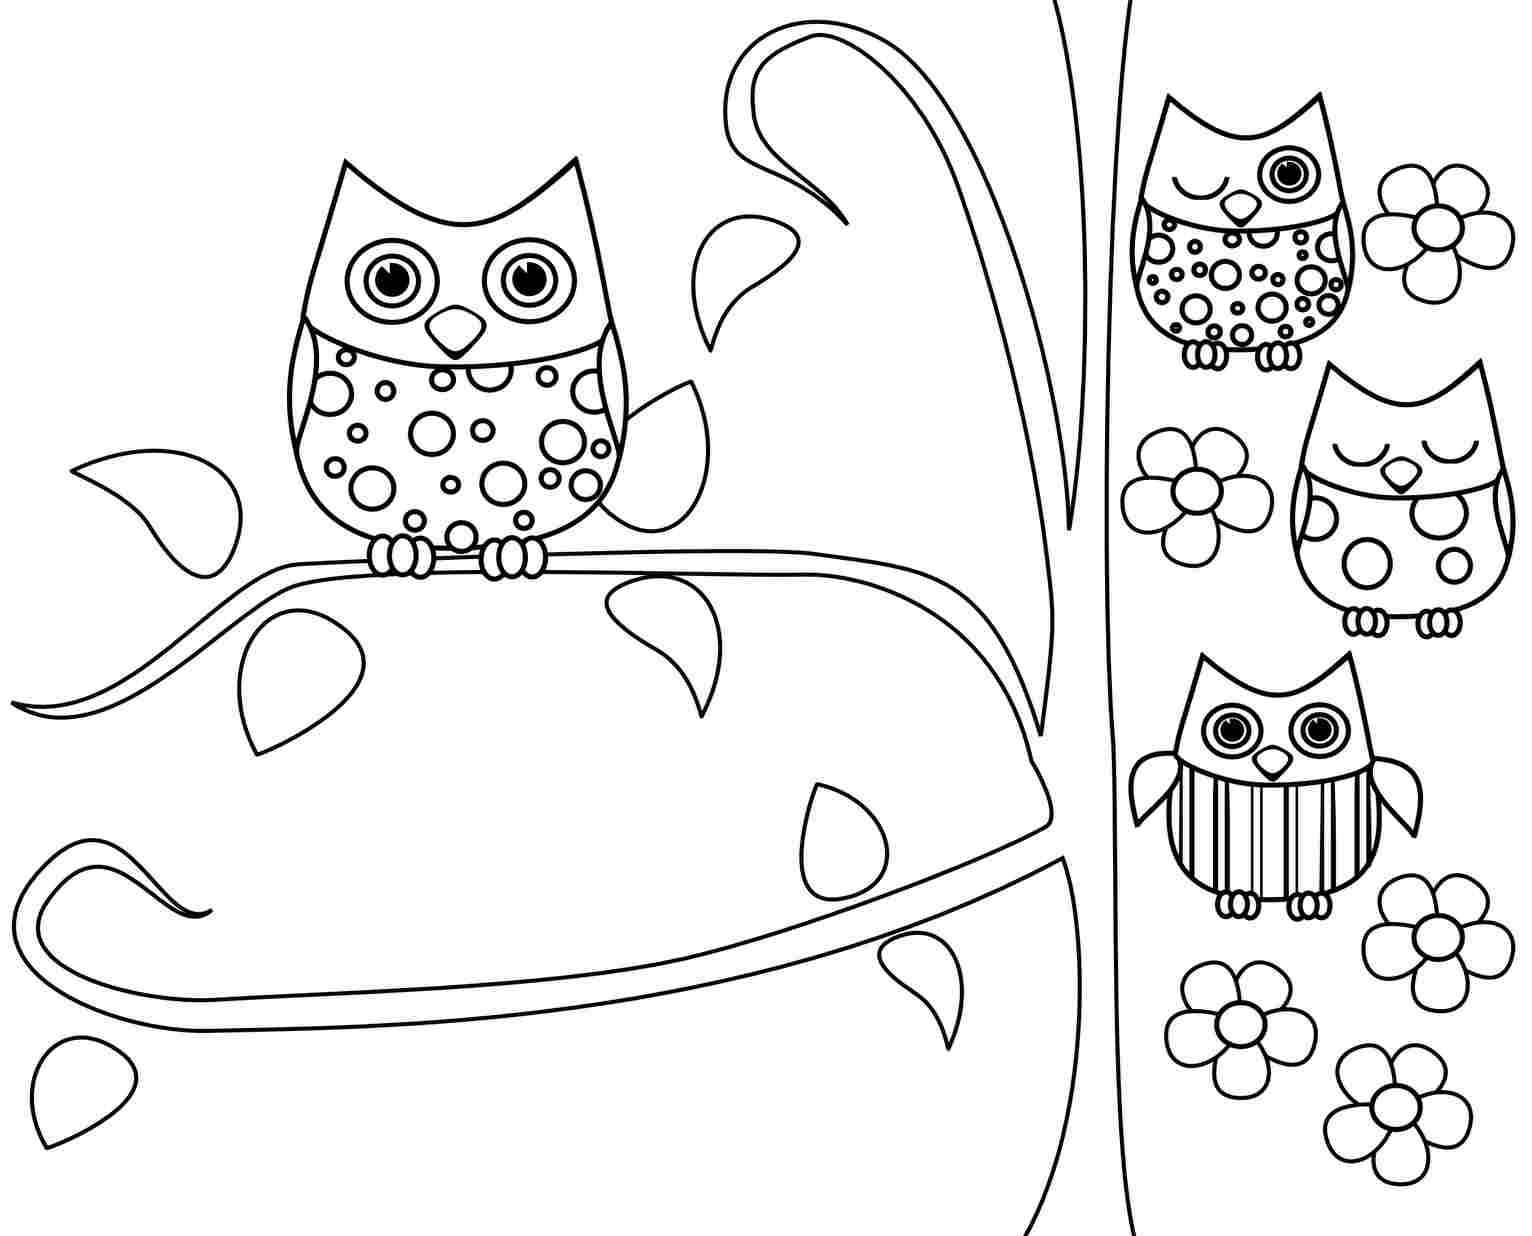 Owl Coloring Pages For Kids Printable At Getdrawings Com Free For